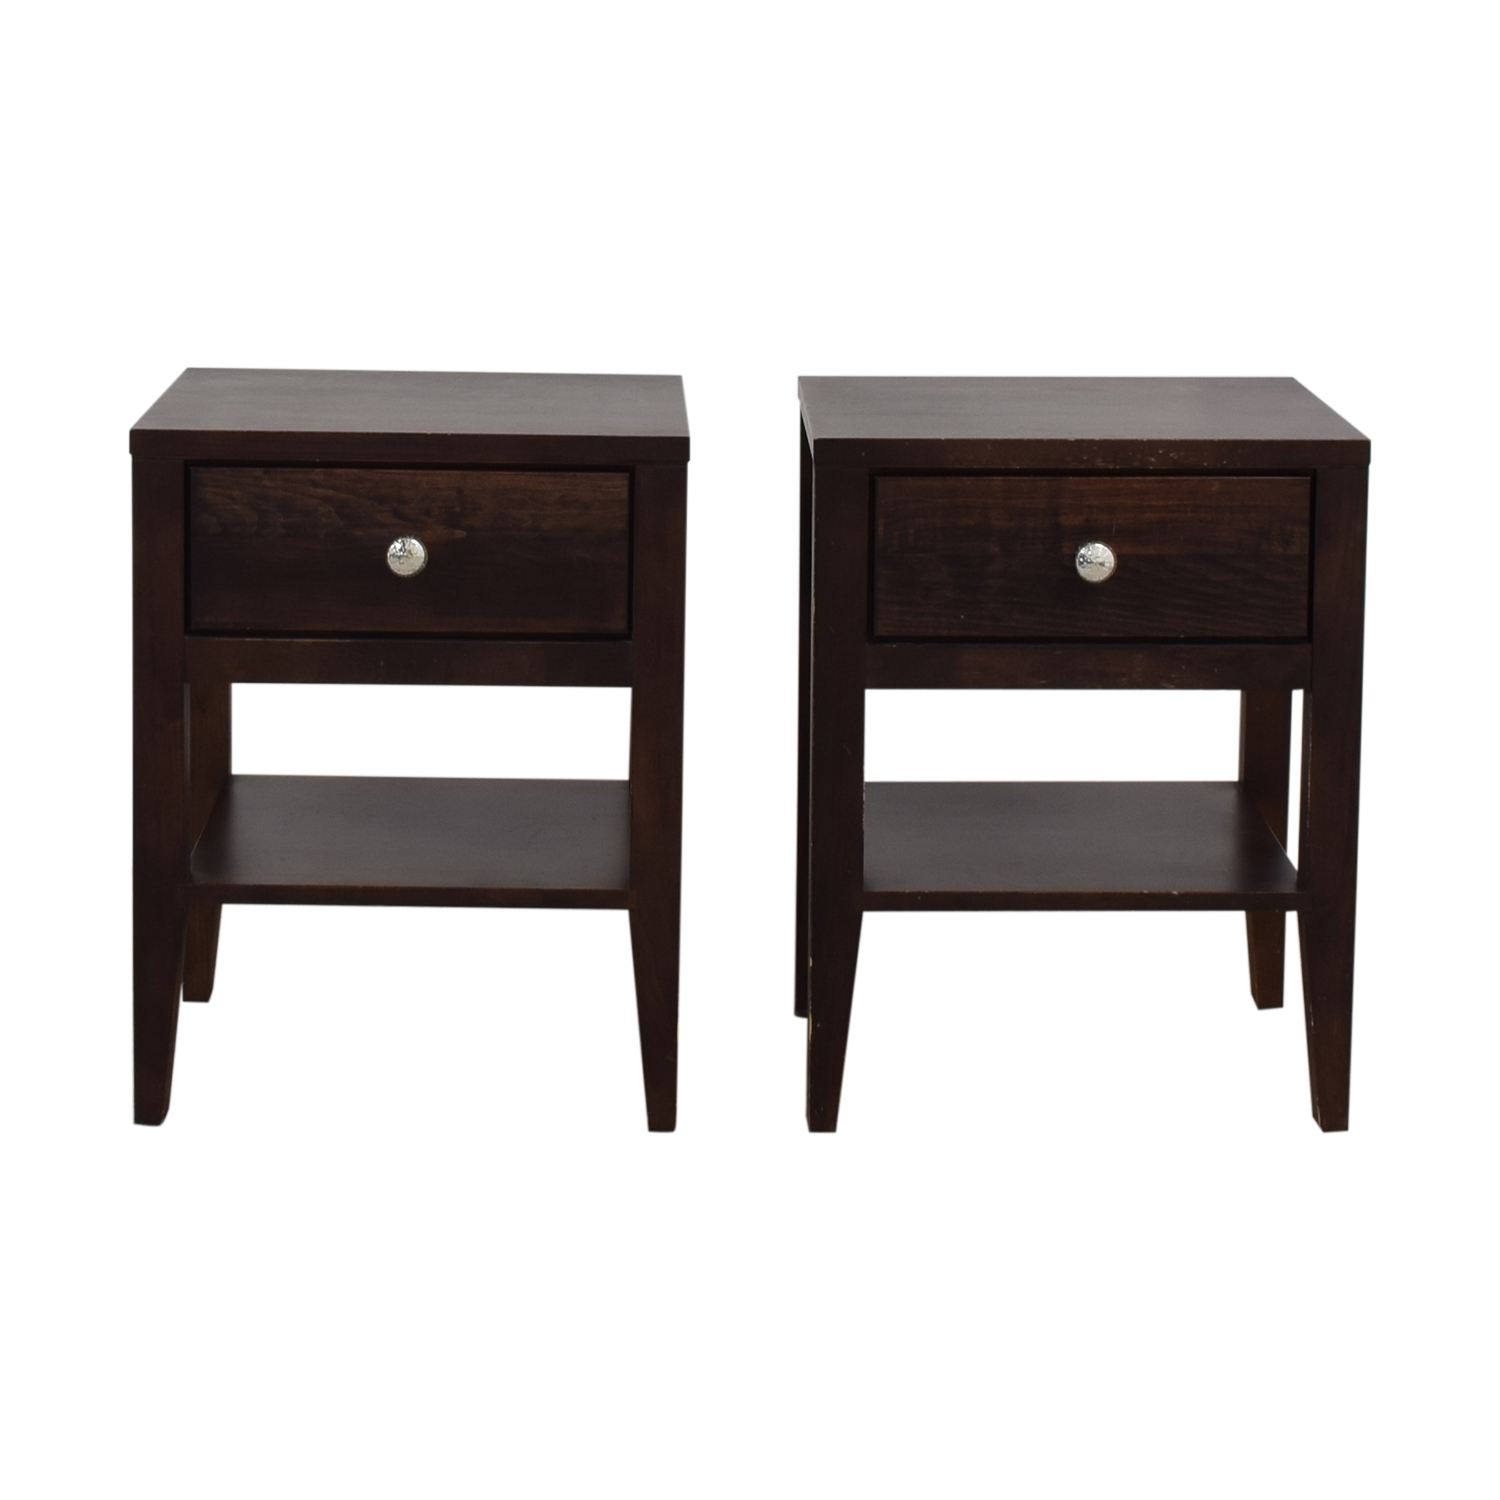 buy Room & Board Room & Board Single-Drawer End Tables online